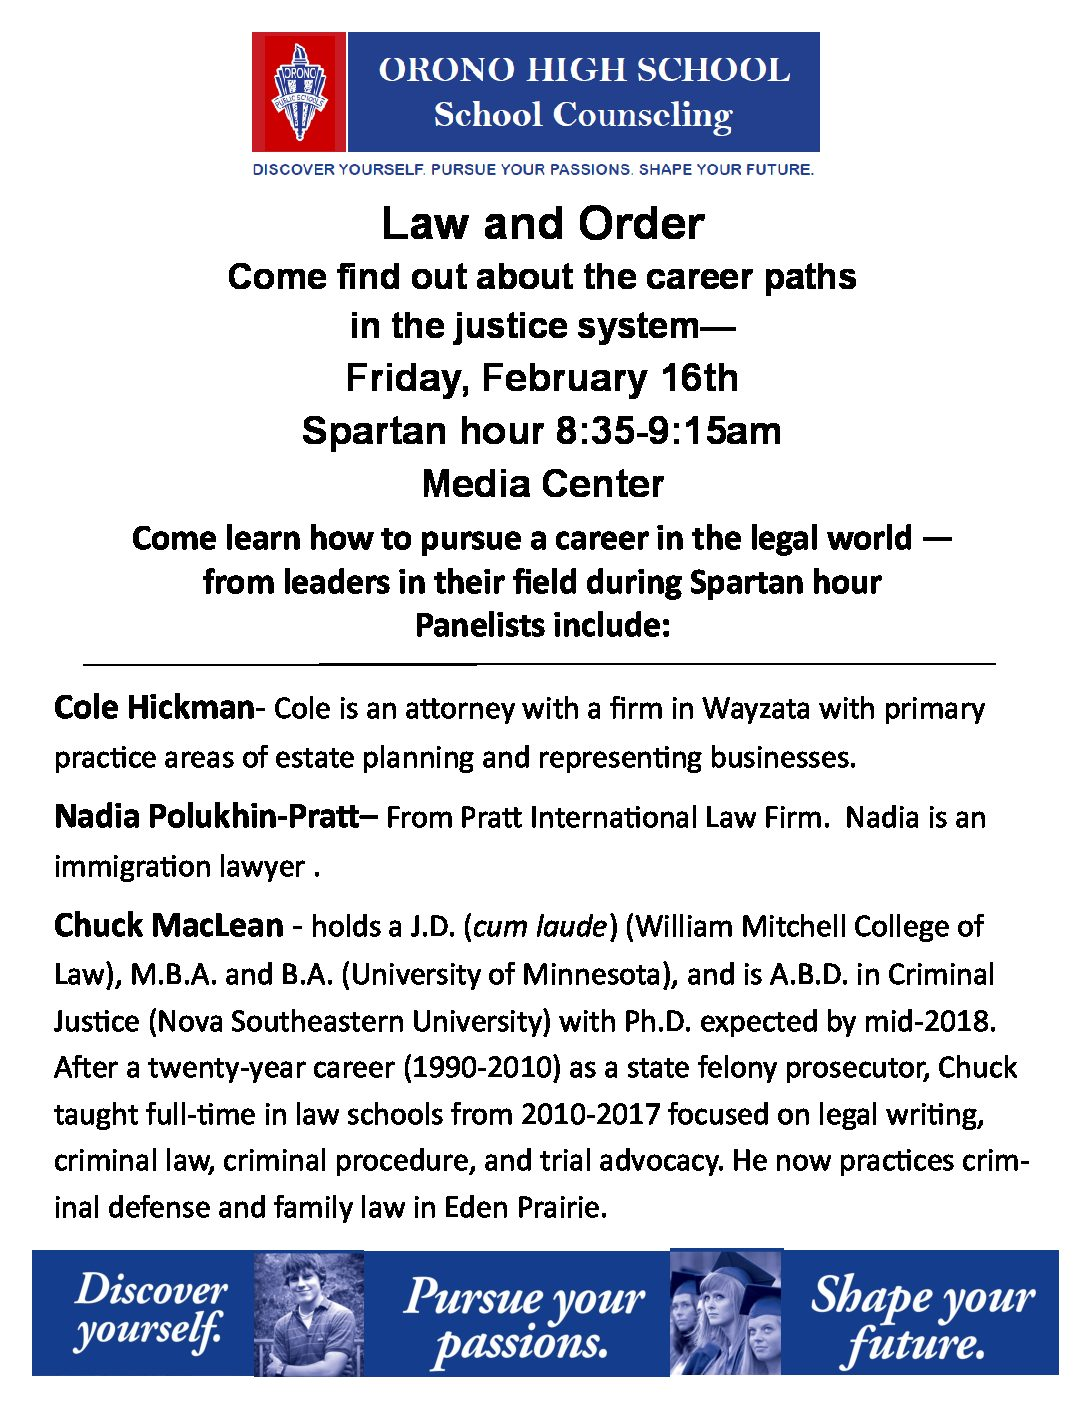 Law and Order Career Quest set for Friday